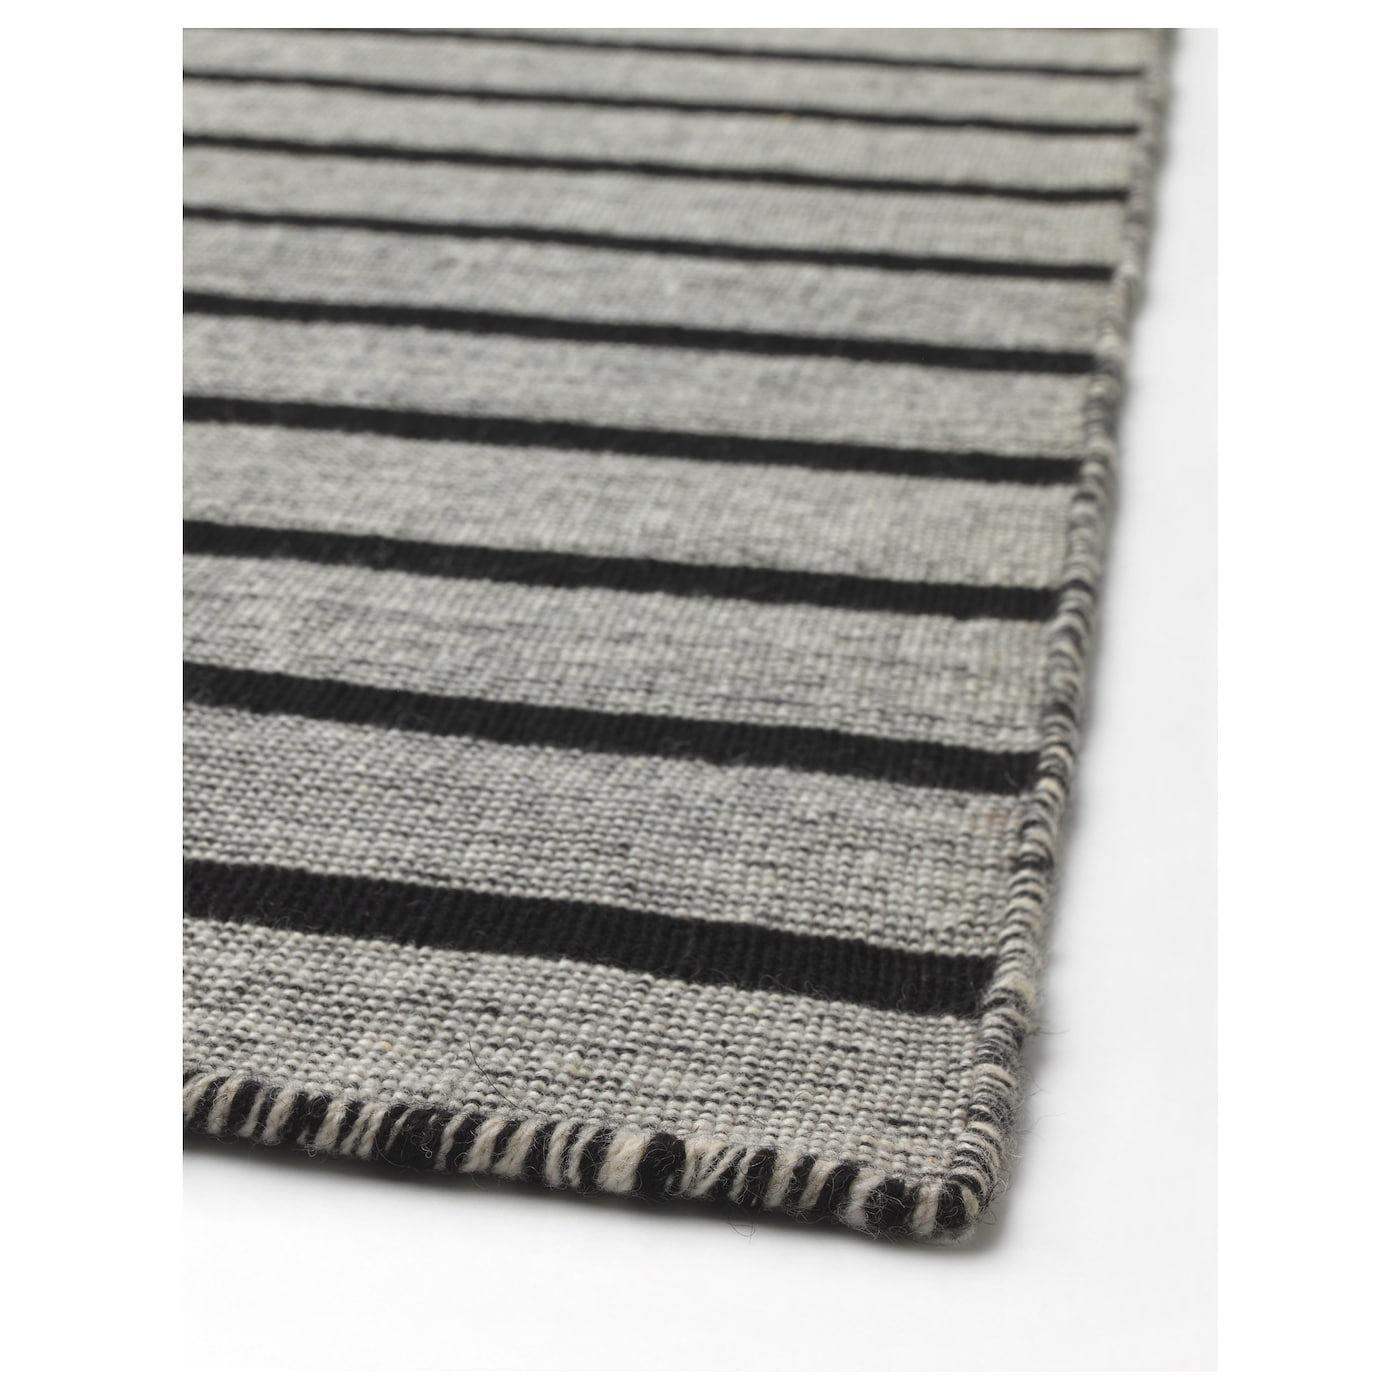 IKEA RASKMÖLLE Rug, Flatwoven Easy To Vacuum Thanks To Its Flat Surface.